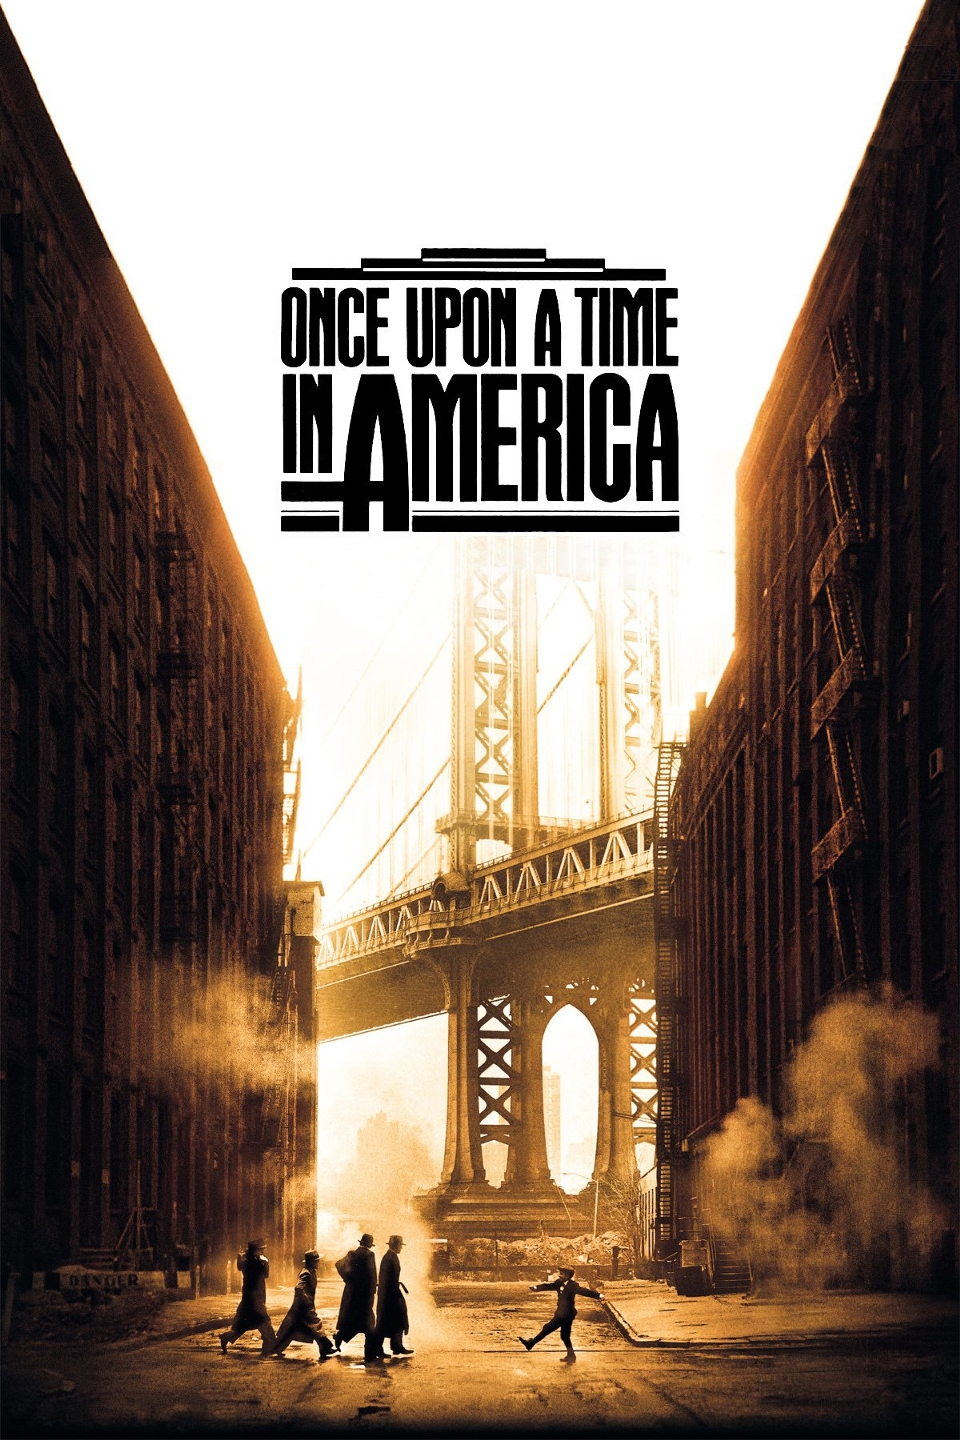 <p>四海兄弟(Once&nbsp;upon&nbsp;a&nbsp;time&nbsp;in&nbsp;America)</p>